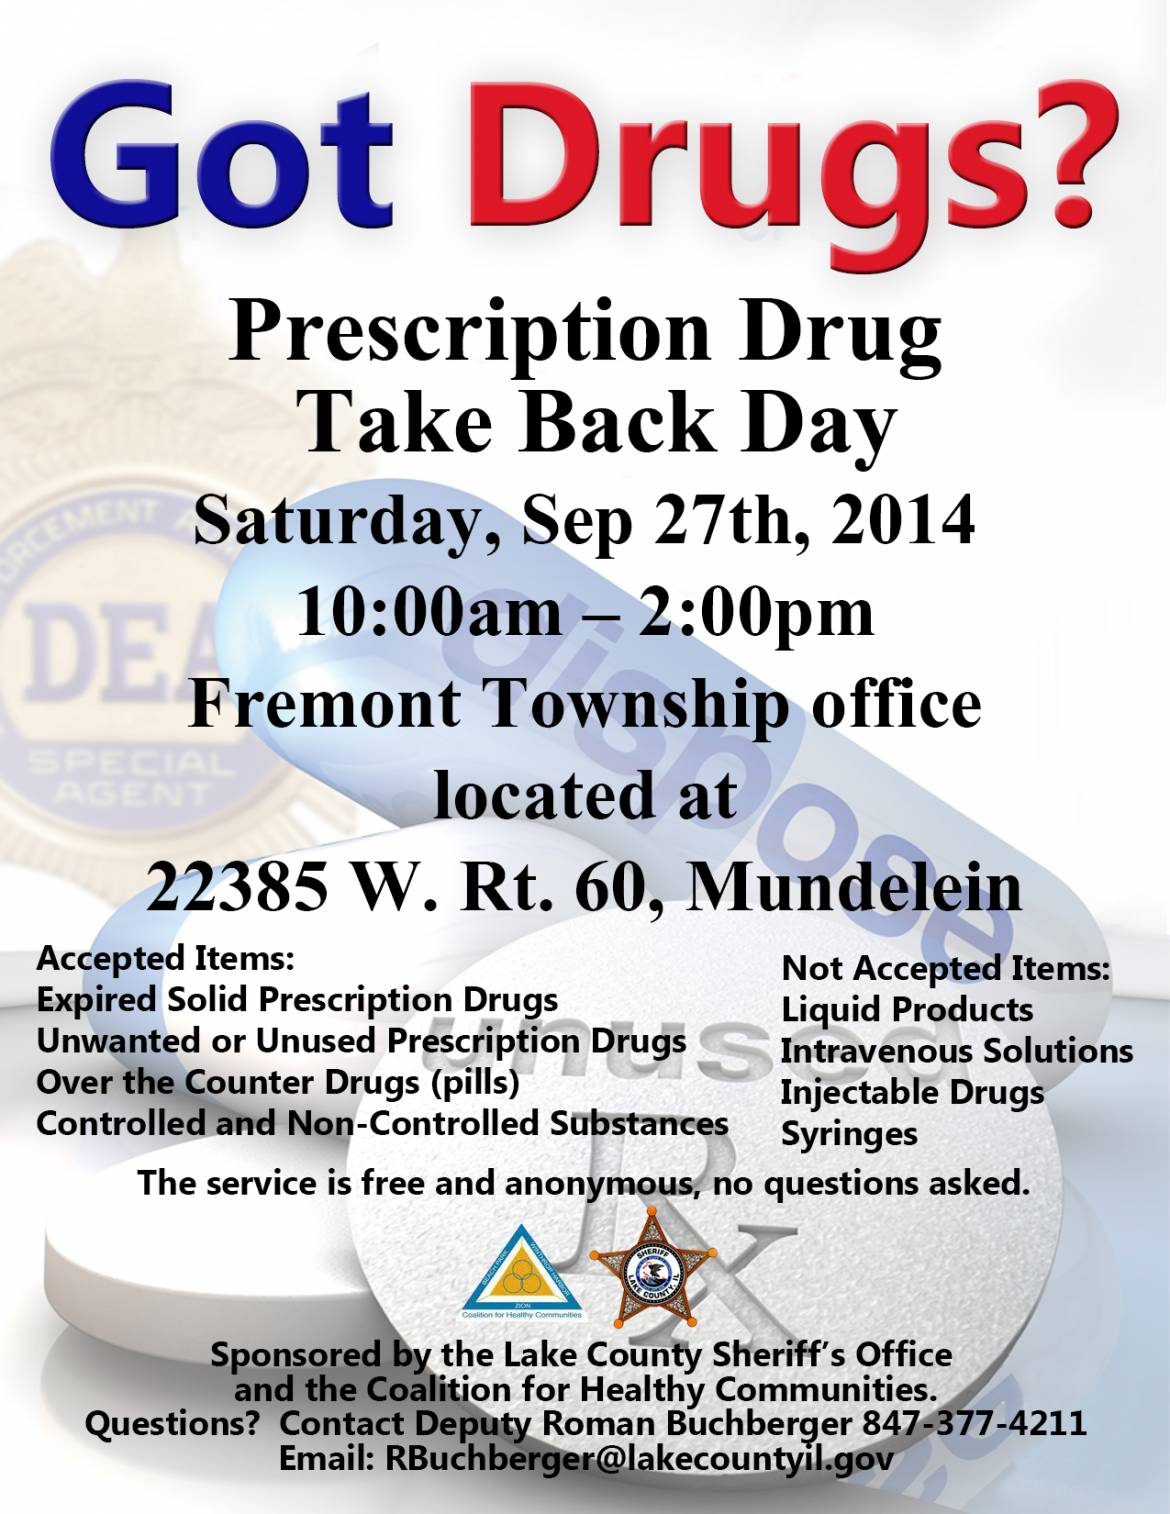 DEA-Drugs-flyer-2014-Fremont-Twn.jpg